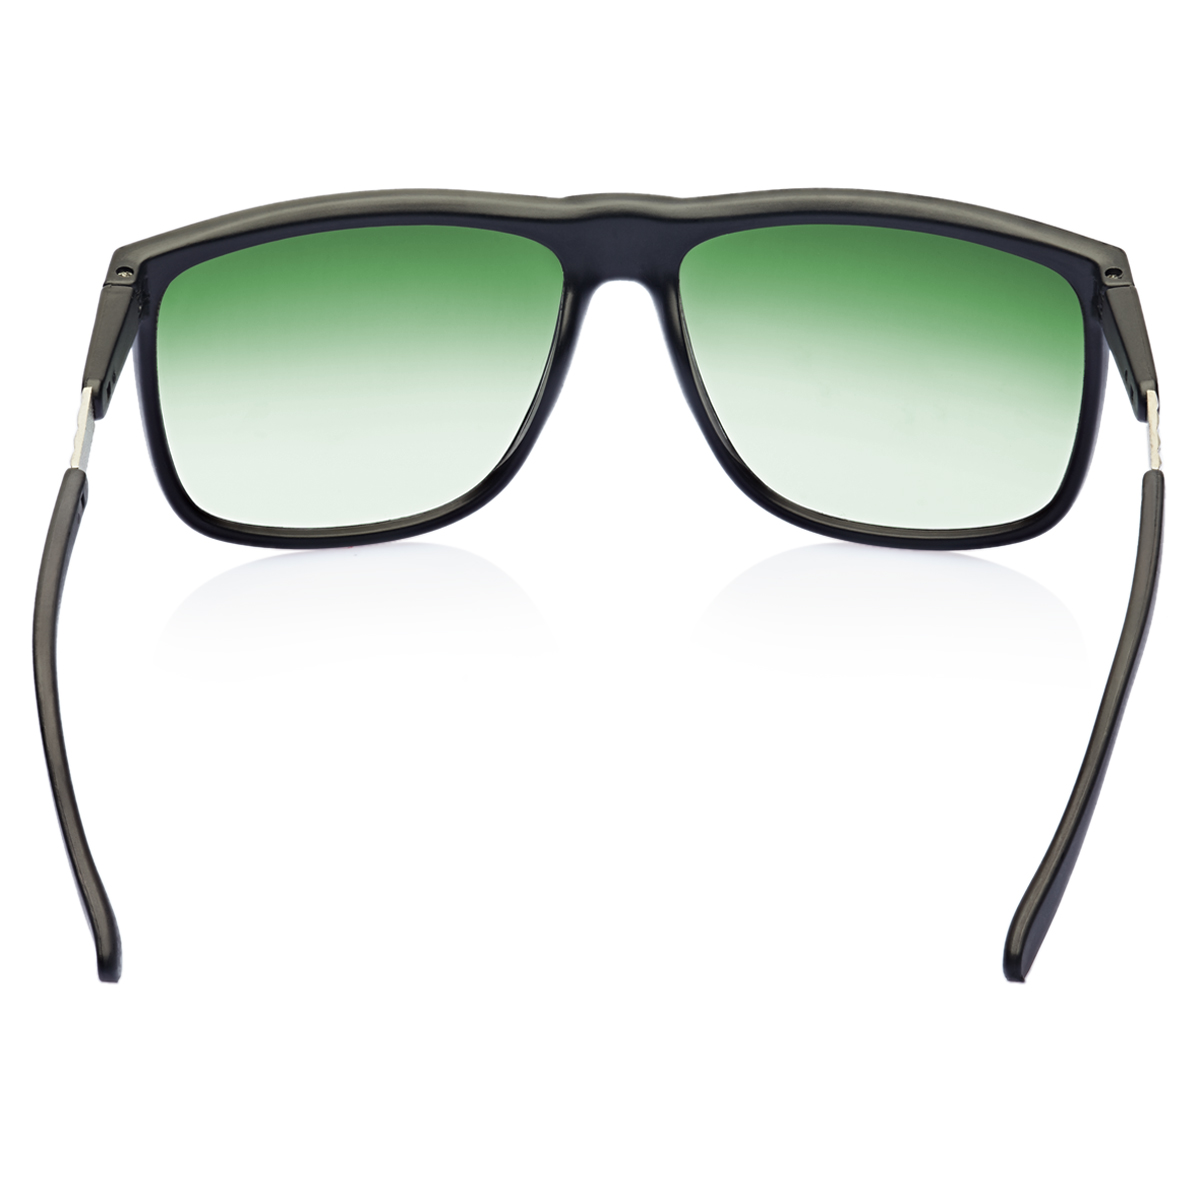 d79c6ffd7e3 Uv Protection Sunglasses Online India